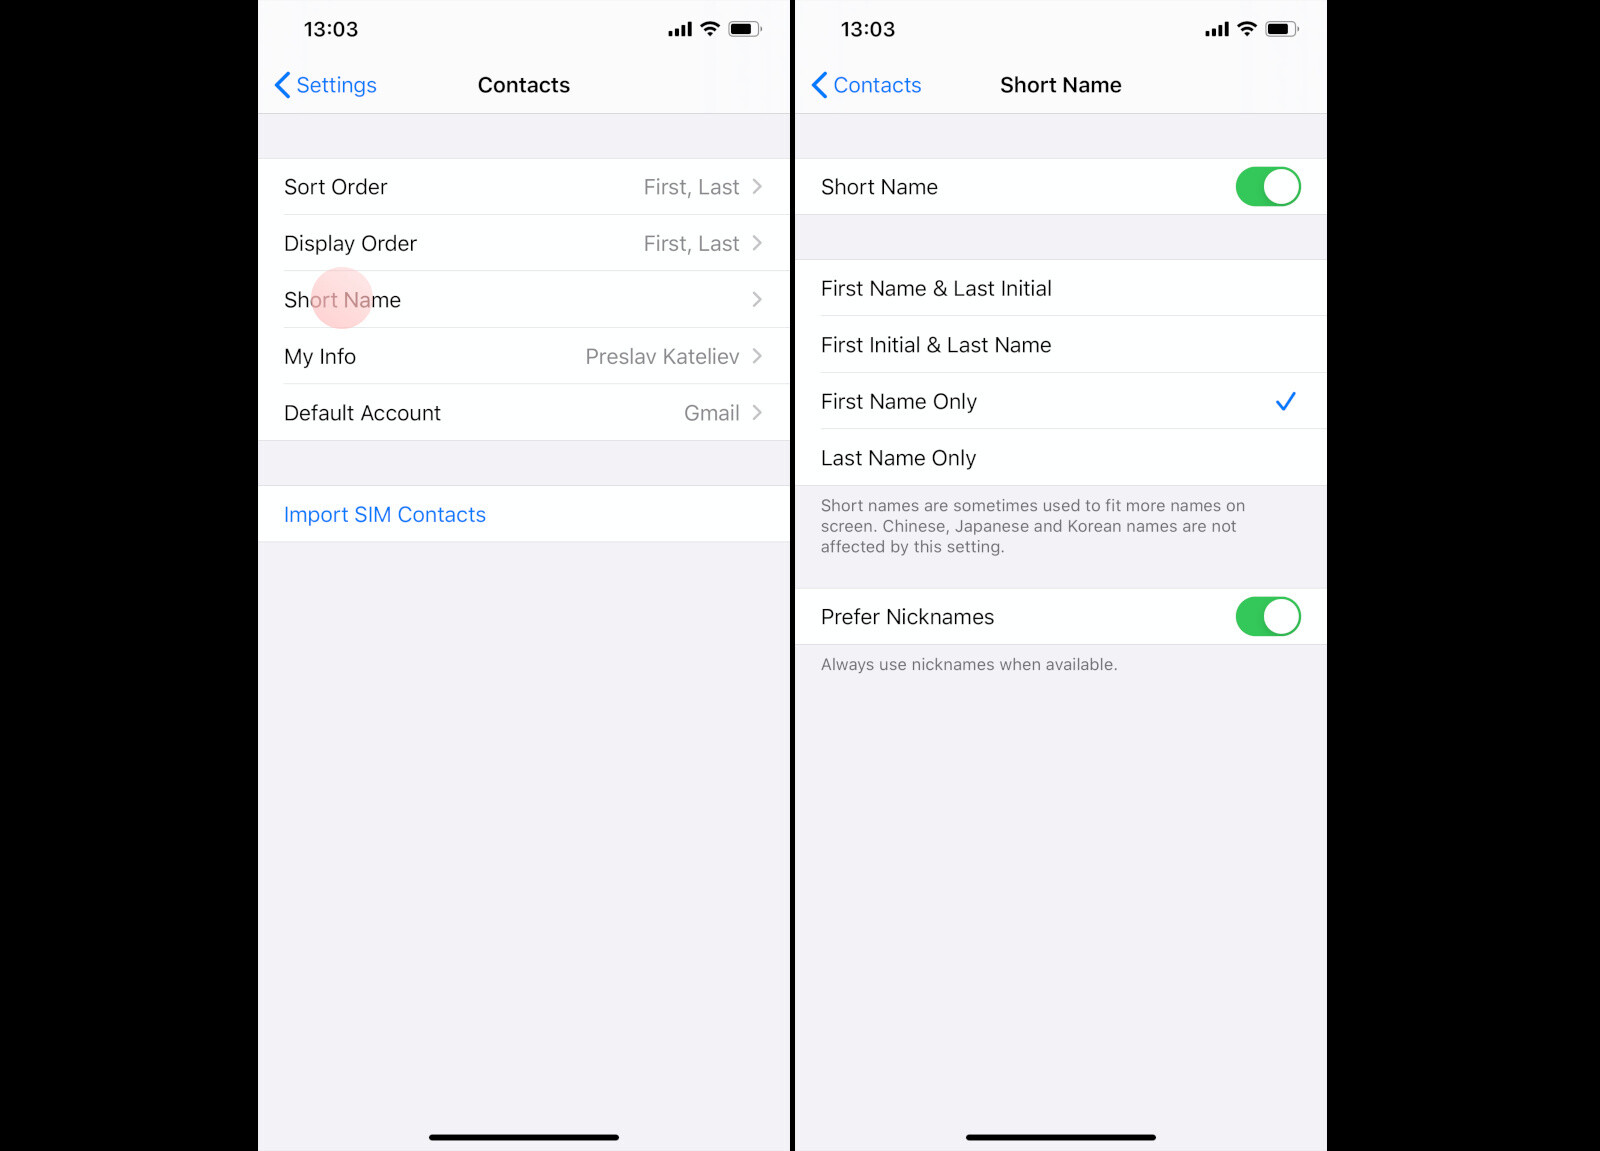 How to sort contacts by first or last name on iPhone